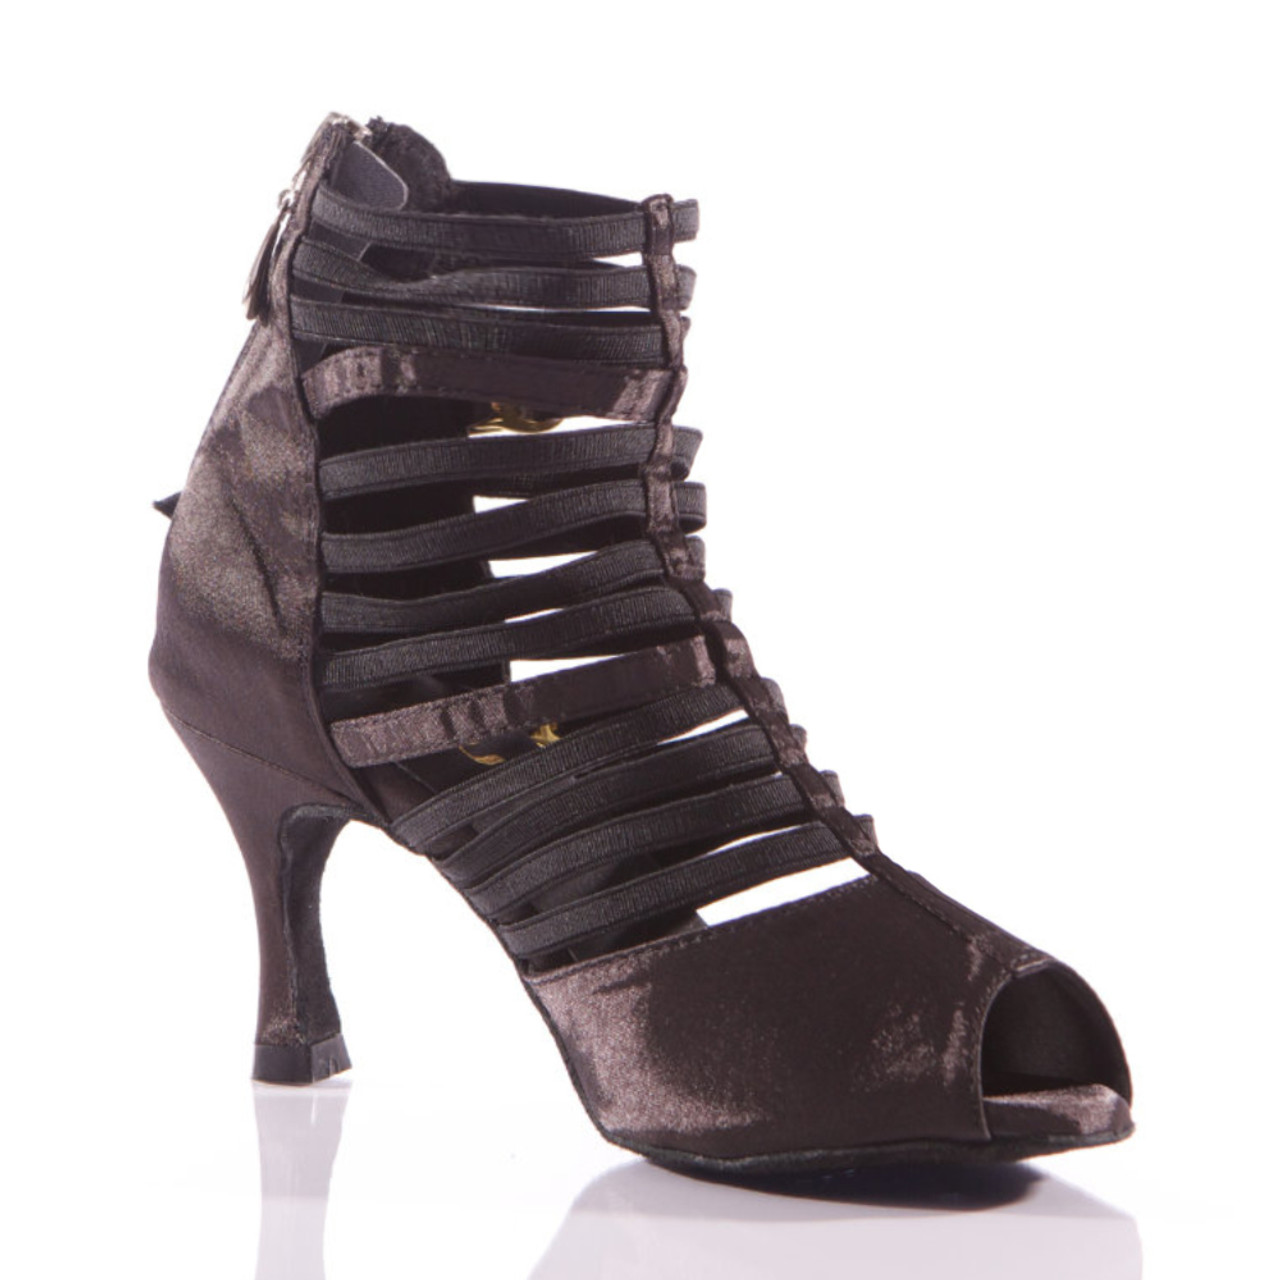 d22eb1bb7fa Relle - Open Toe Elastic Strappy Dance Shoe - 3 inch Flared Heels ...